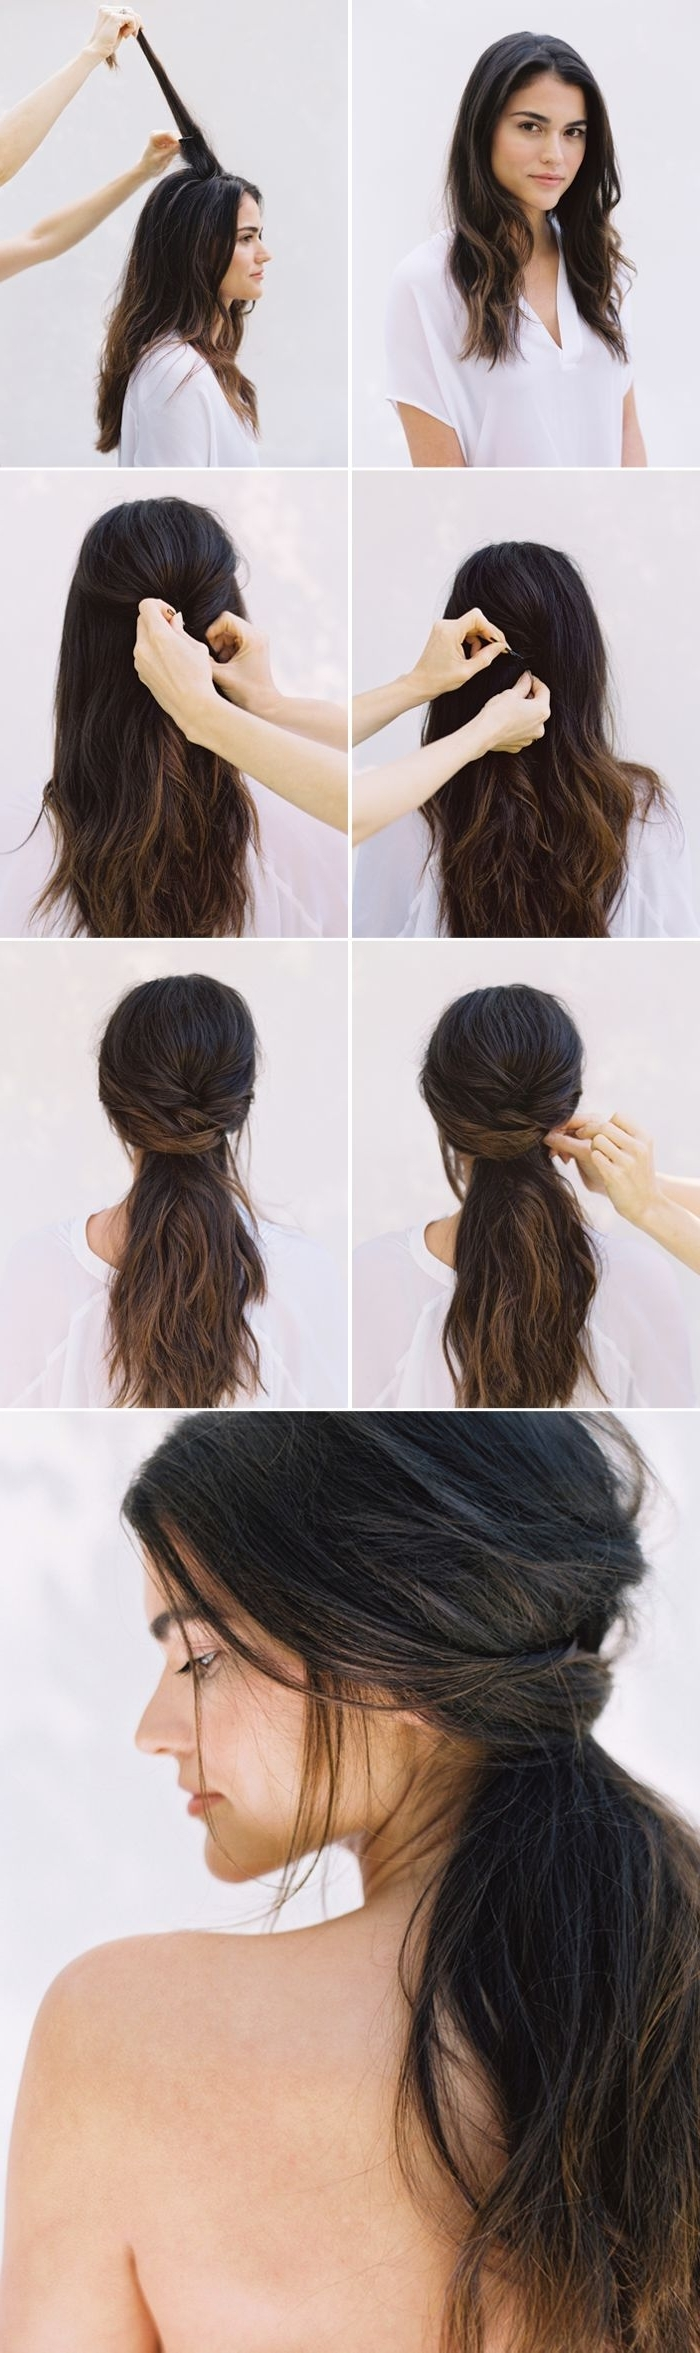 Widely Used Wedding Hairstyles For Long Ponytail Hair For 232 Best Wedding Hairstyles Images On Pinterest (View 15 of 15)